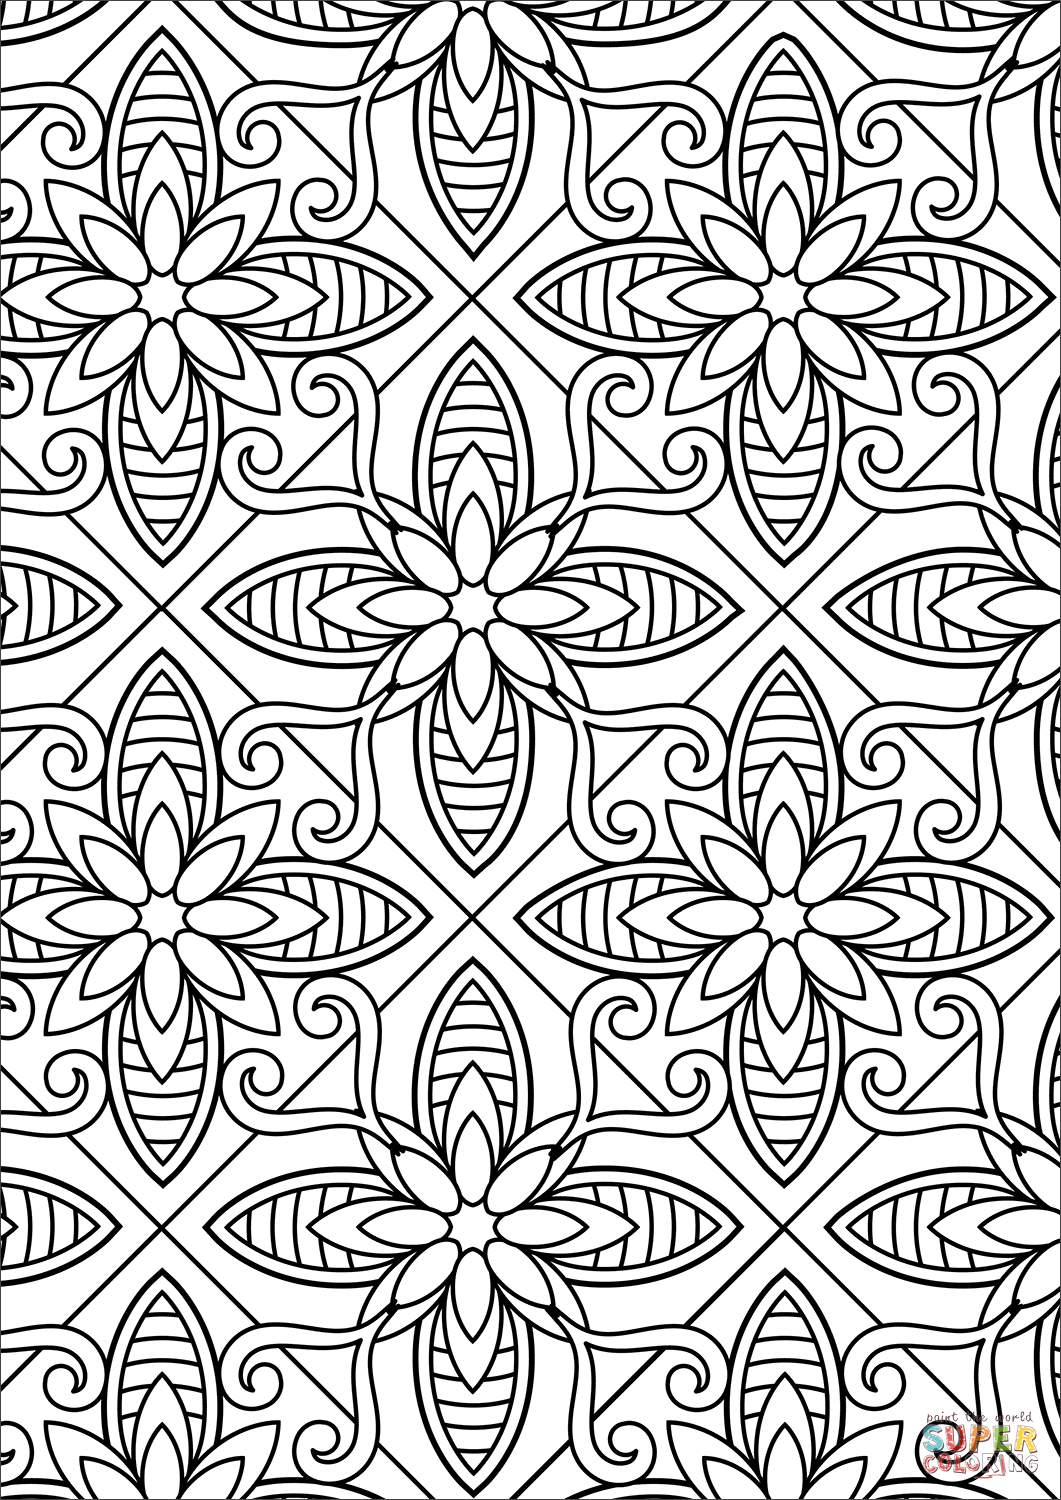 free coloring patterns floral pattern coloring page free printable coloring pages patterns coloring free